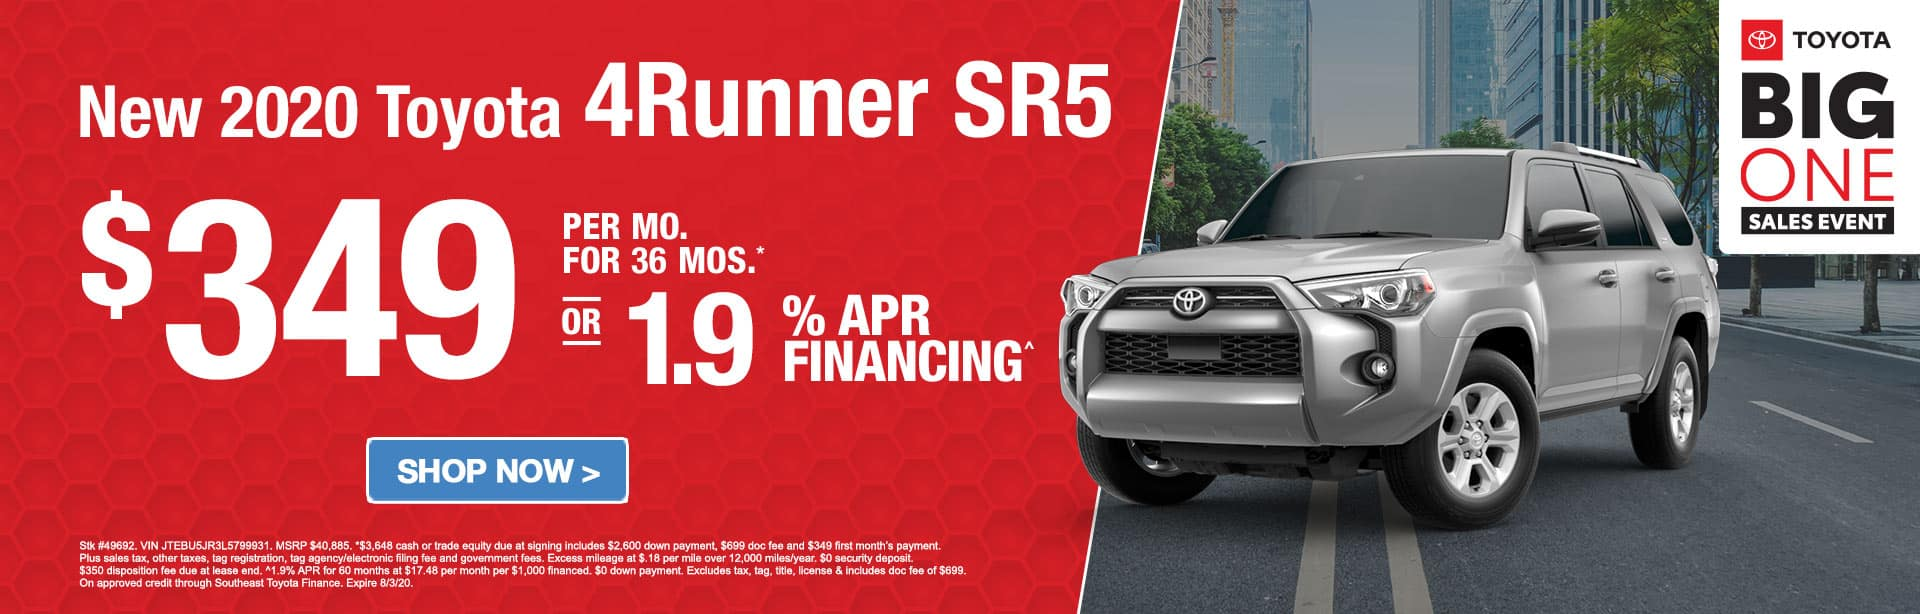 Big One Sales Event 4Runner 0% APR